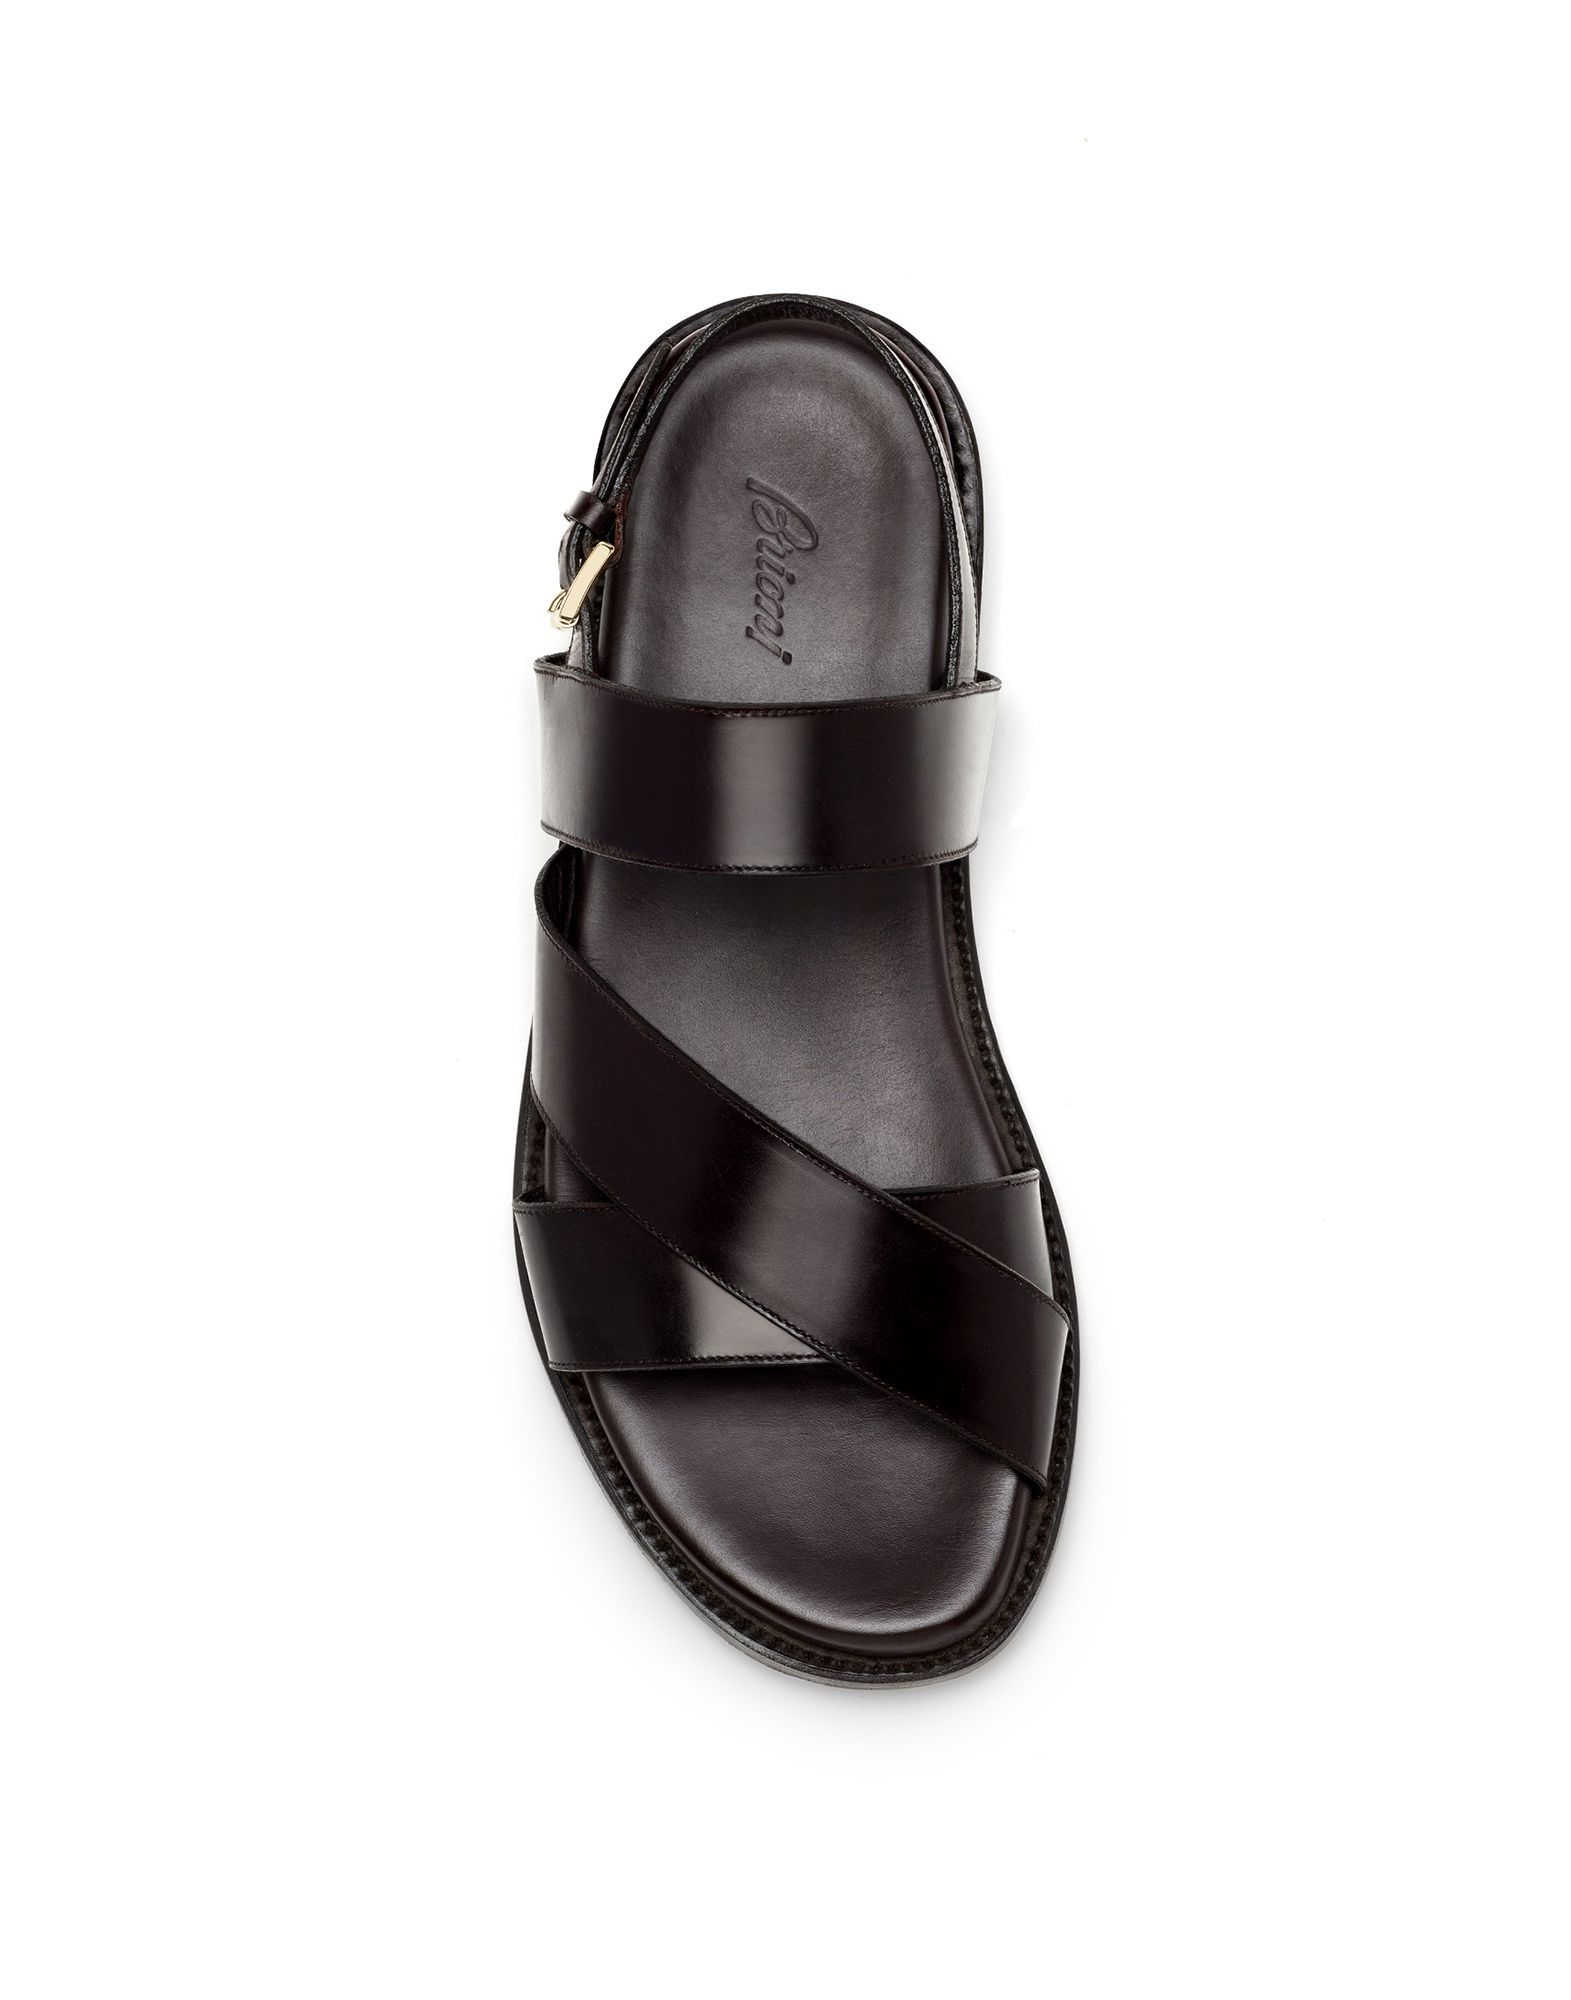 b8fcd700cce3fc Brioni Men s Sandals